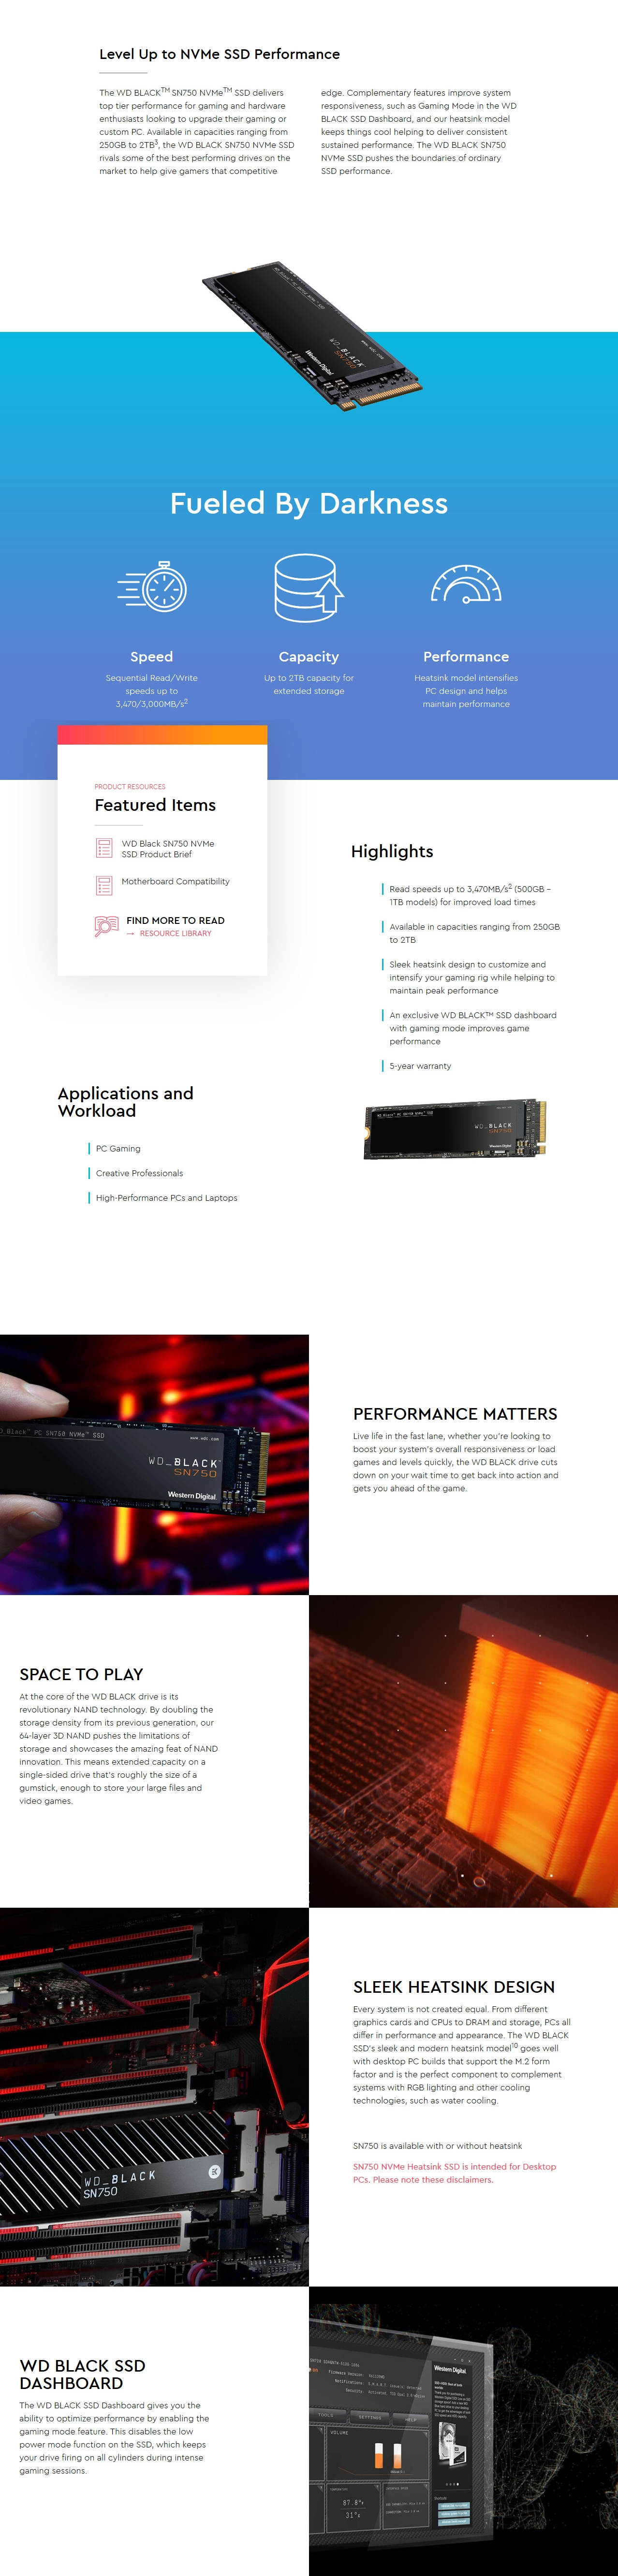 A large marketing image providing additional information about the product WD Black SN750 2TB 3D NAND NVMe M.2 SSD - Additional alt info not provided